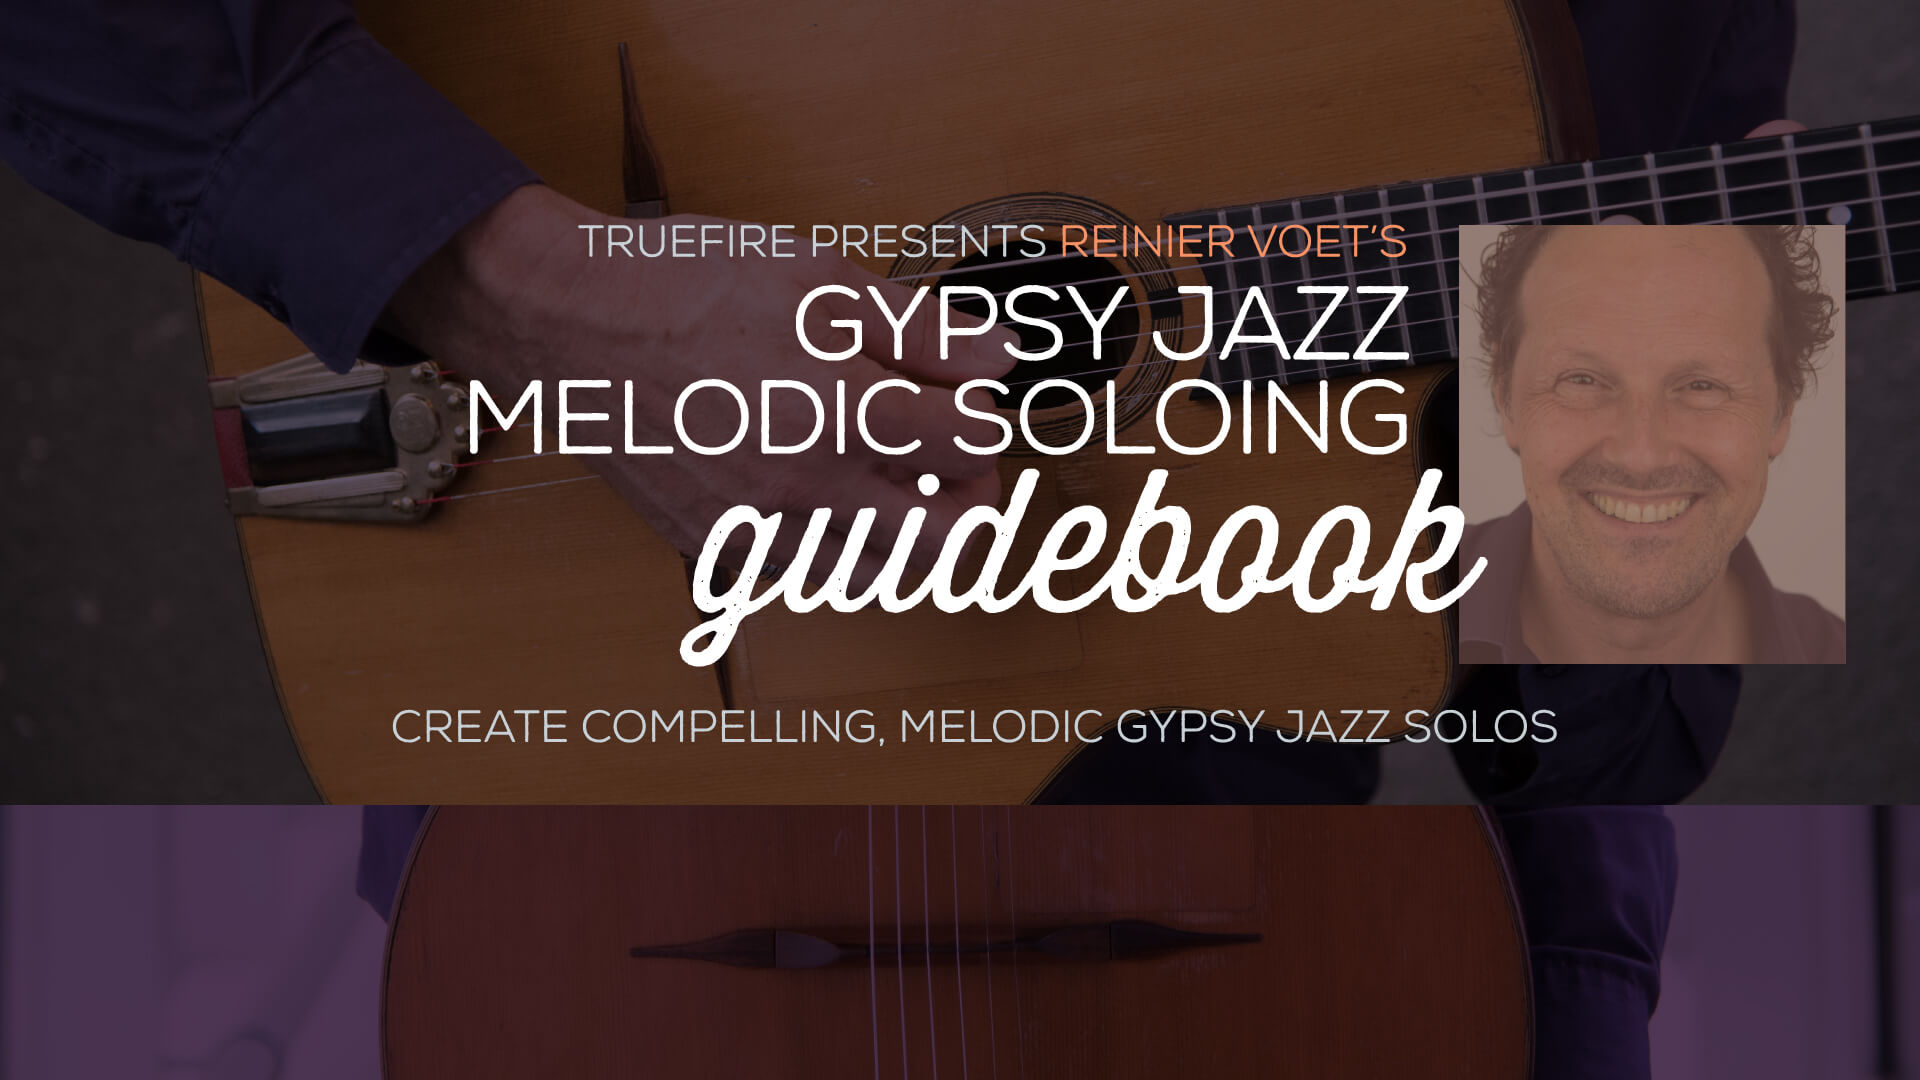 Reinier Voet's Gypsy Jazz Melodic Soloing Guidebook